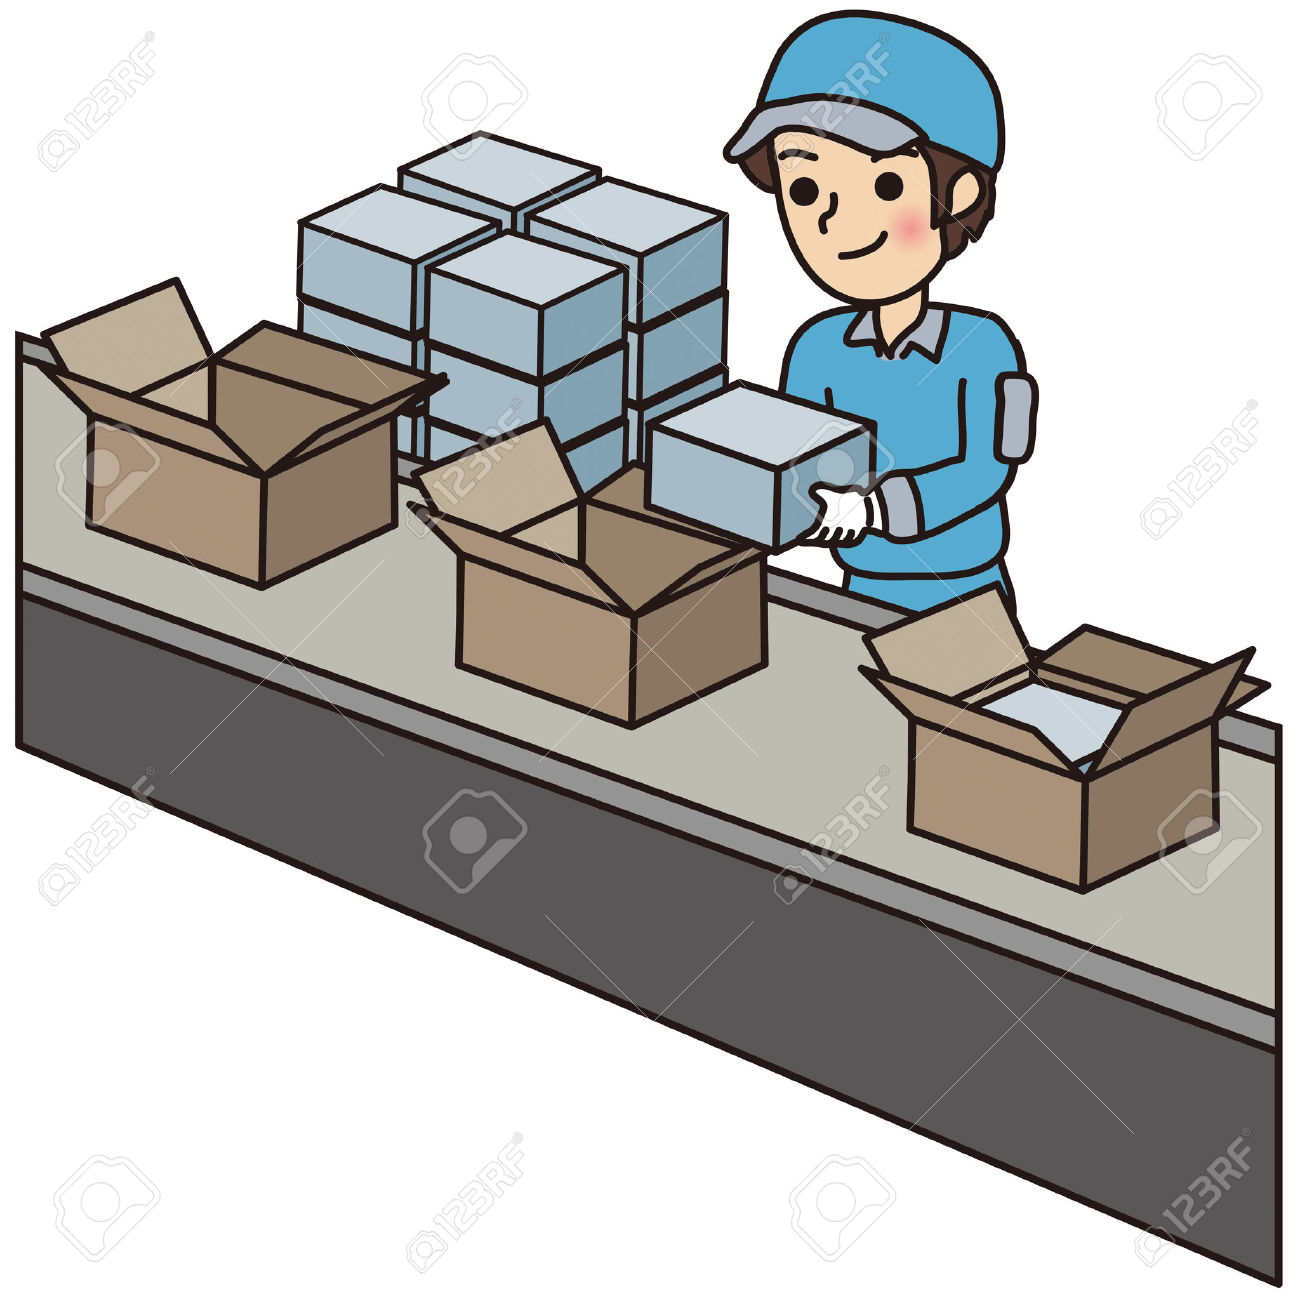 Clipart packing.